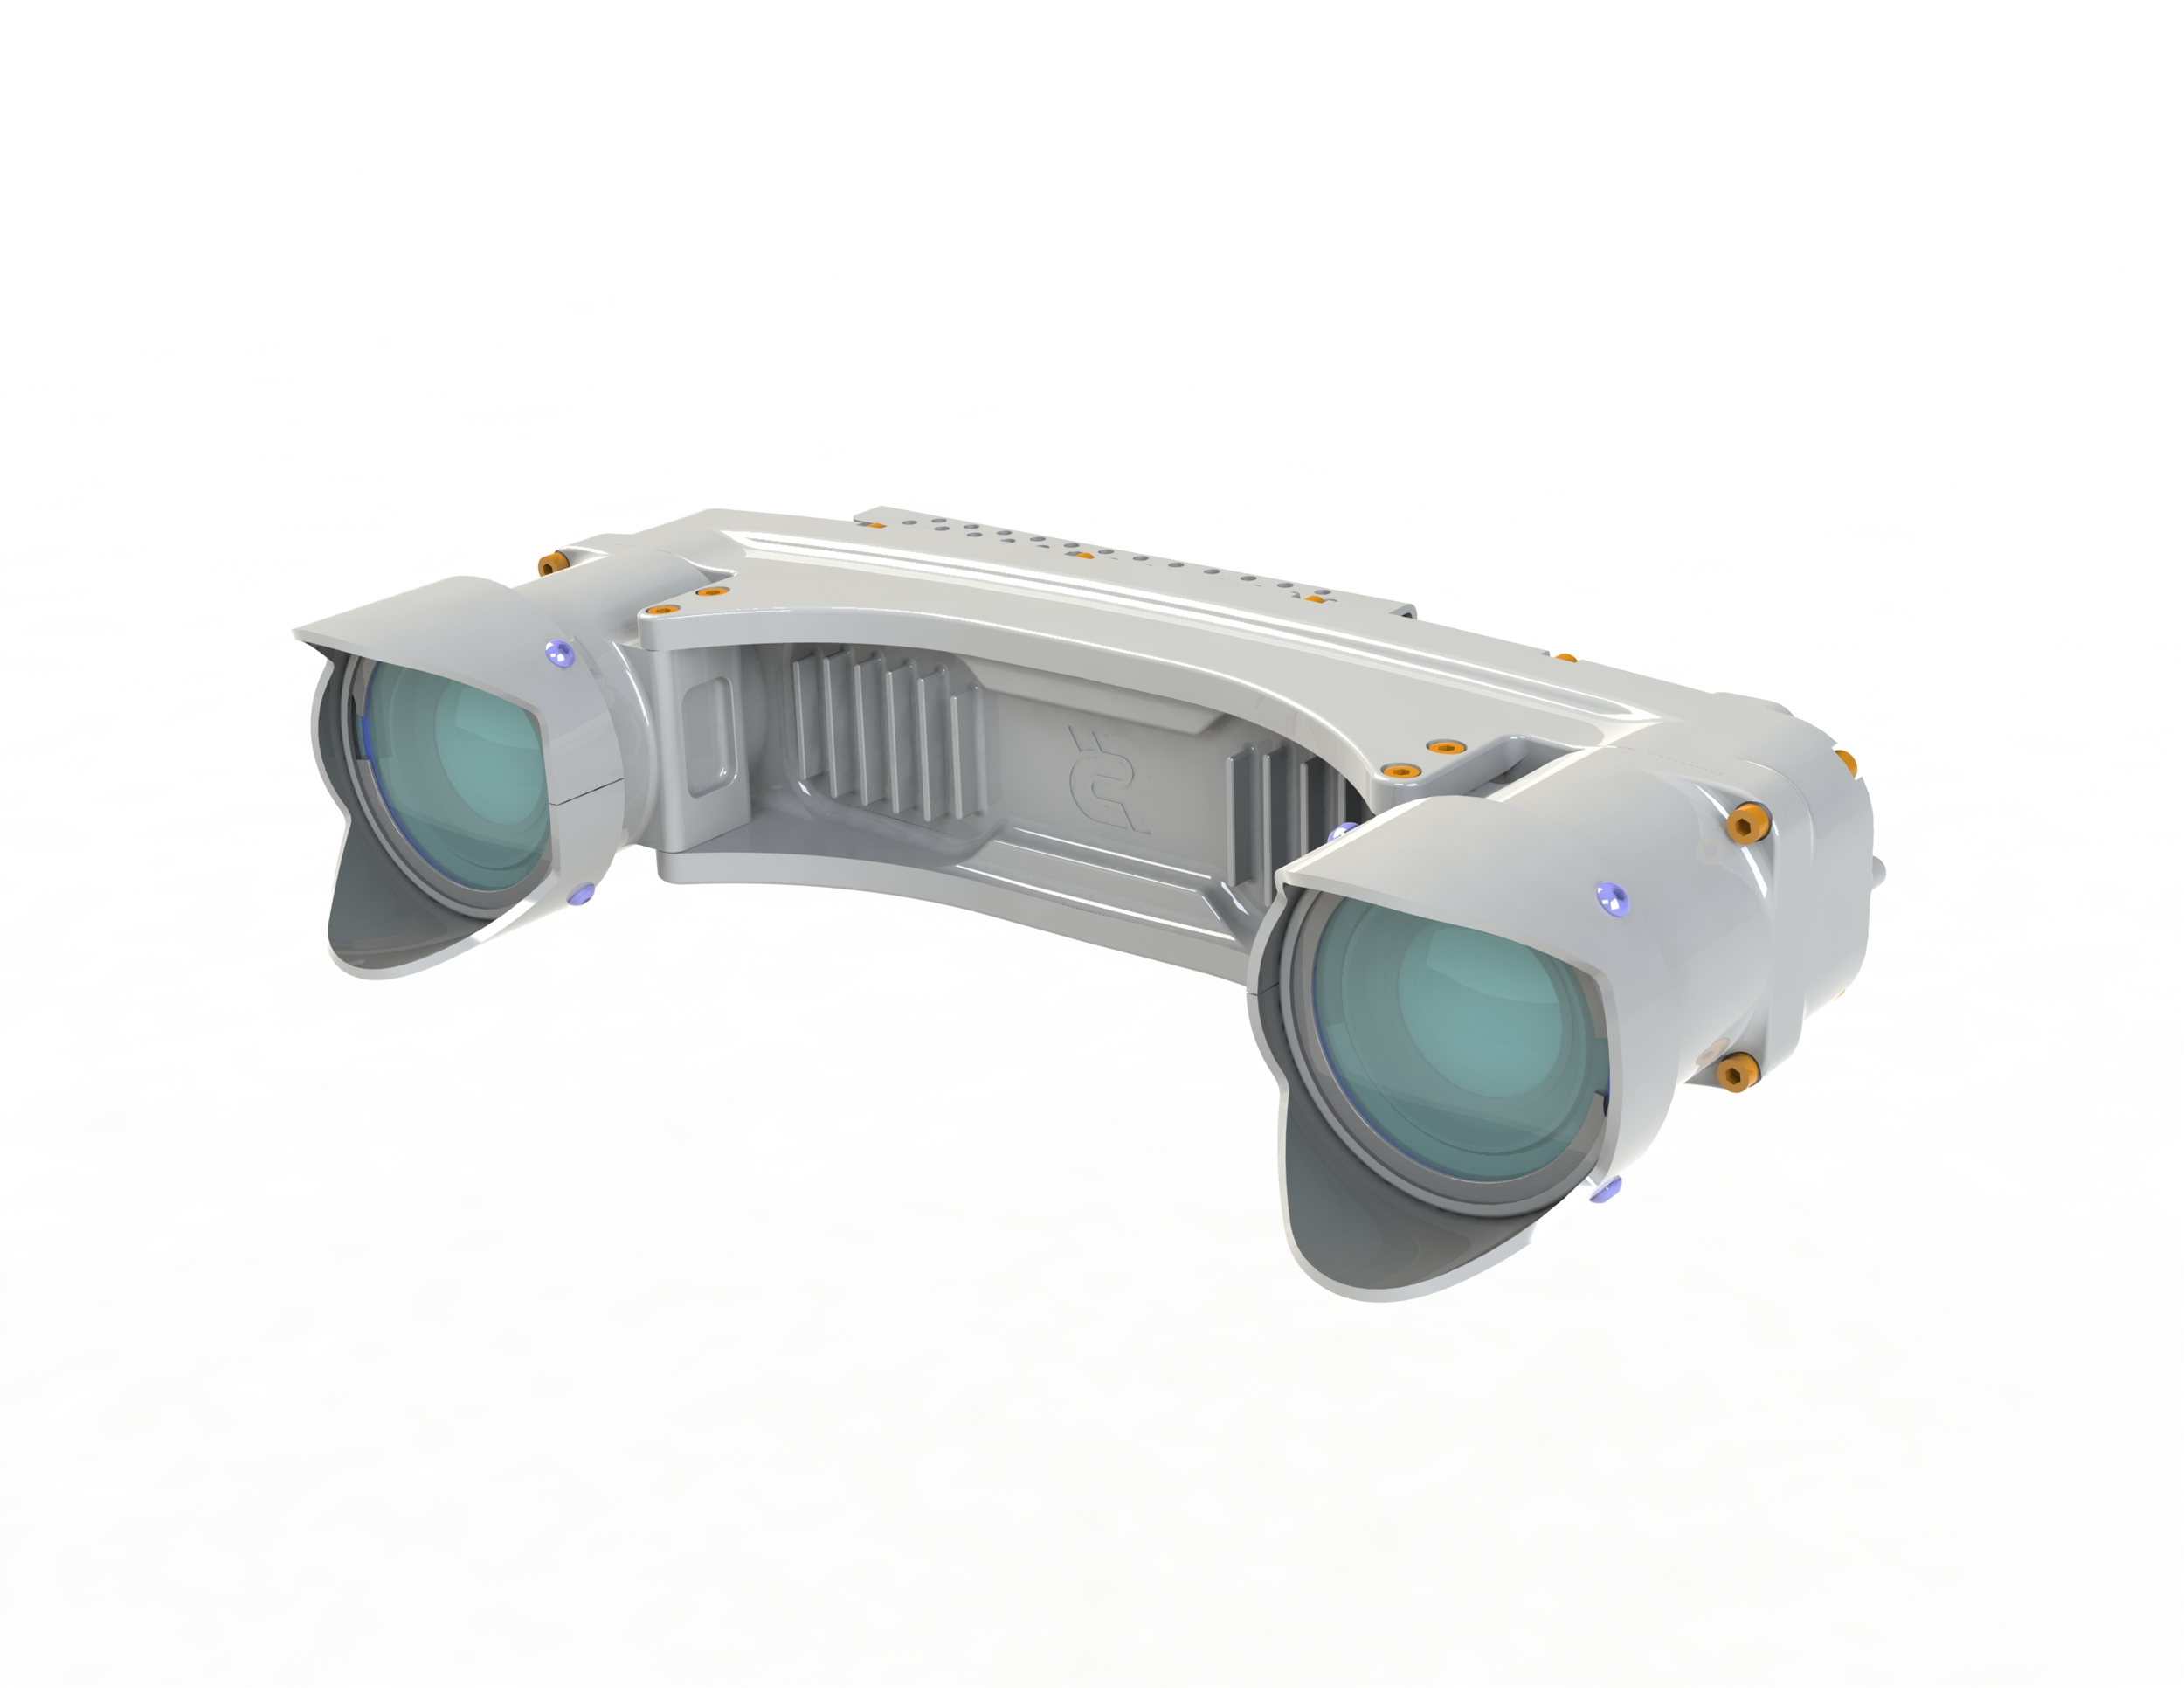 MultiSense S21: Wide Baseline 3D Stereo and Video Sensor for Longer Range Applications. A Variety of Factory-Installed Lenses are Available.